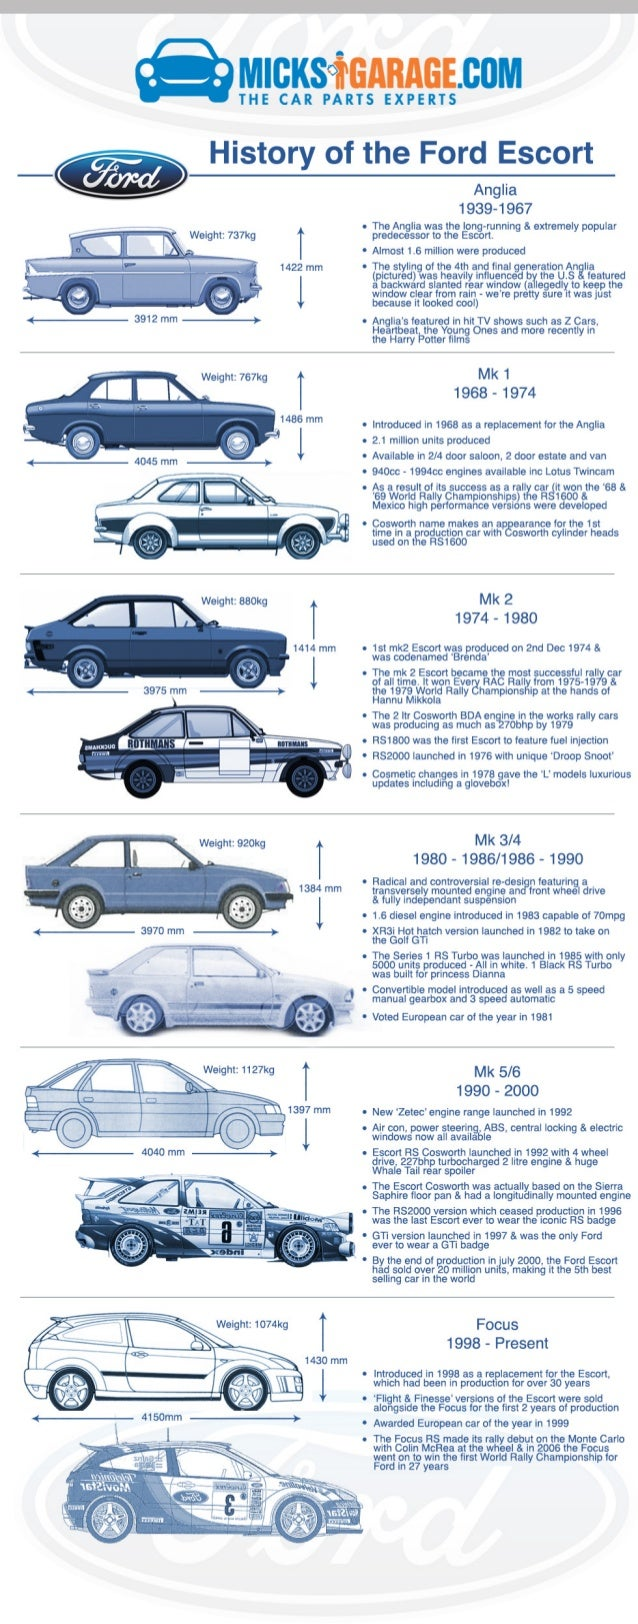 History of the Ford Escort. M| CKS°1'GABAGE. BOM THE CAR PARTS EXPERTS  History of the